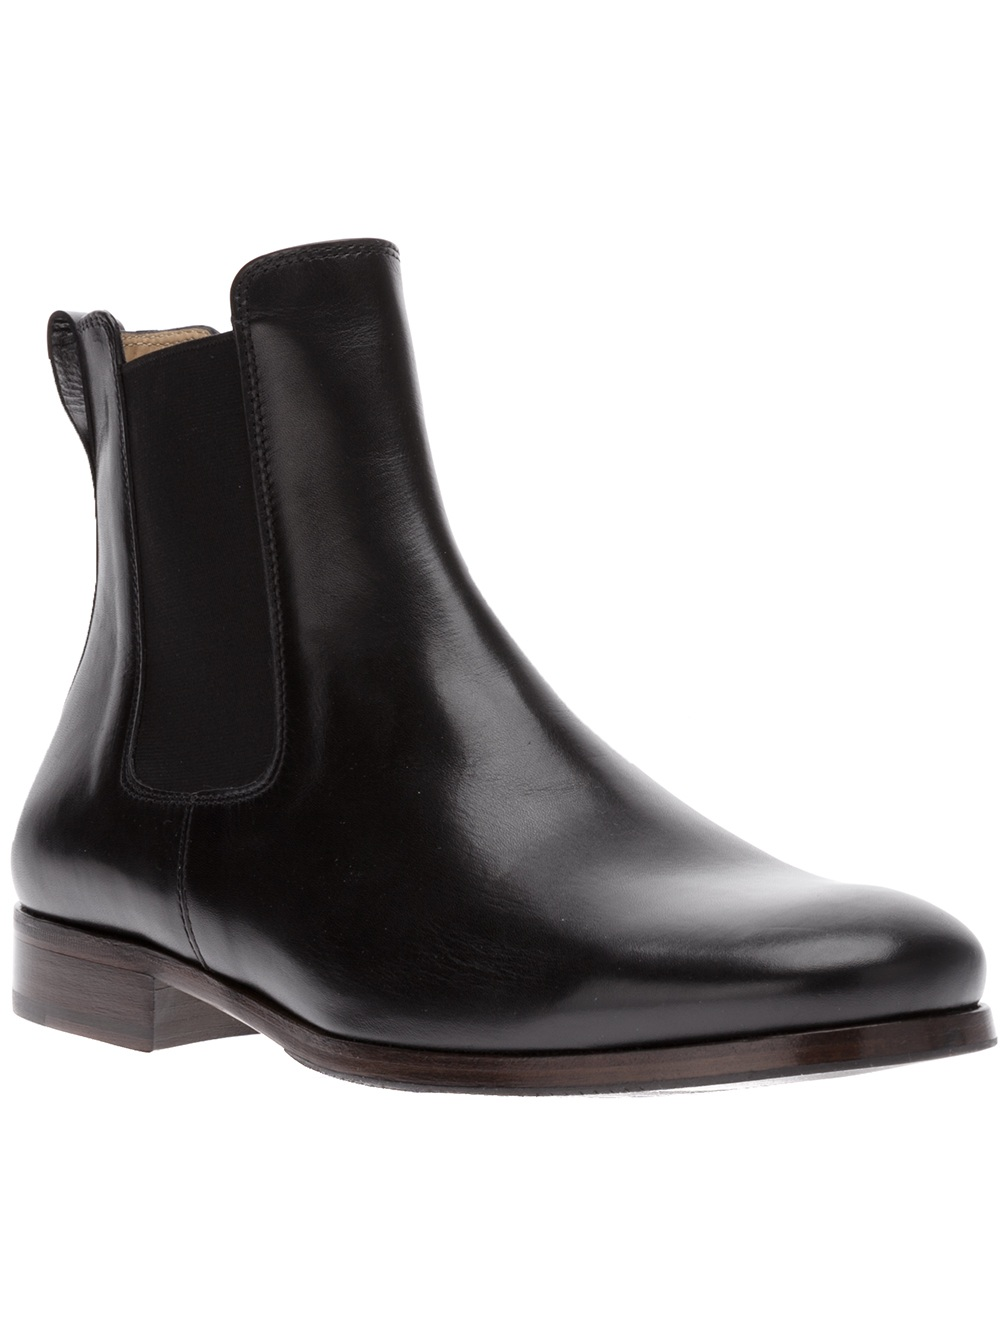 Lyst A P C Black Leather Chelsea Boots In Black For Men